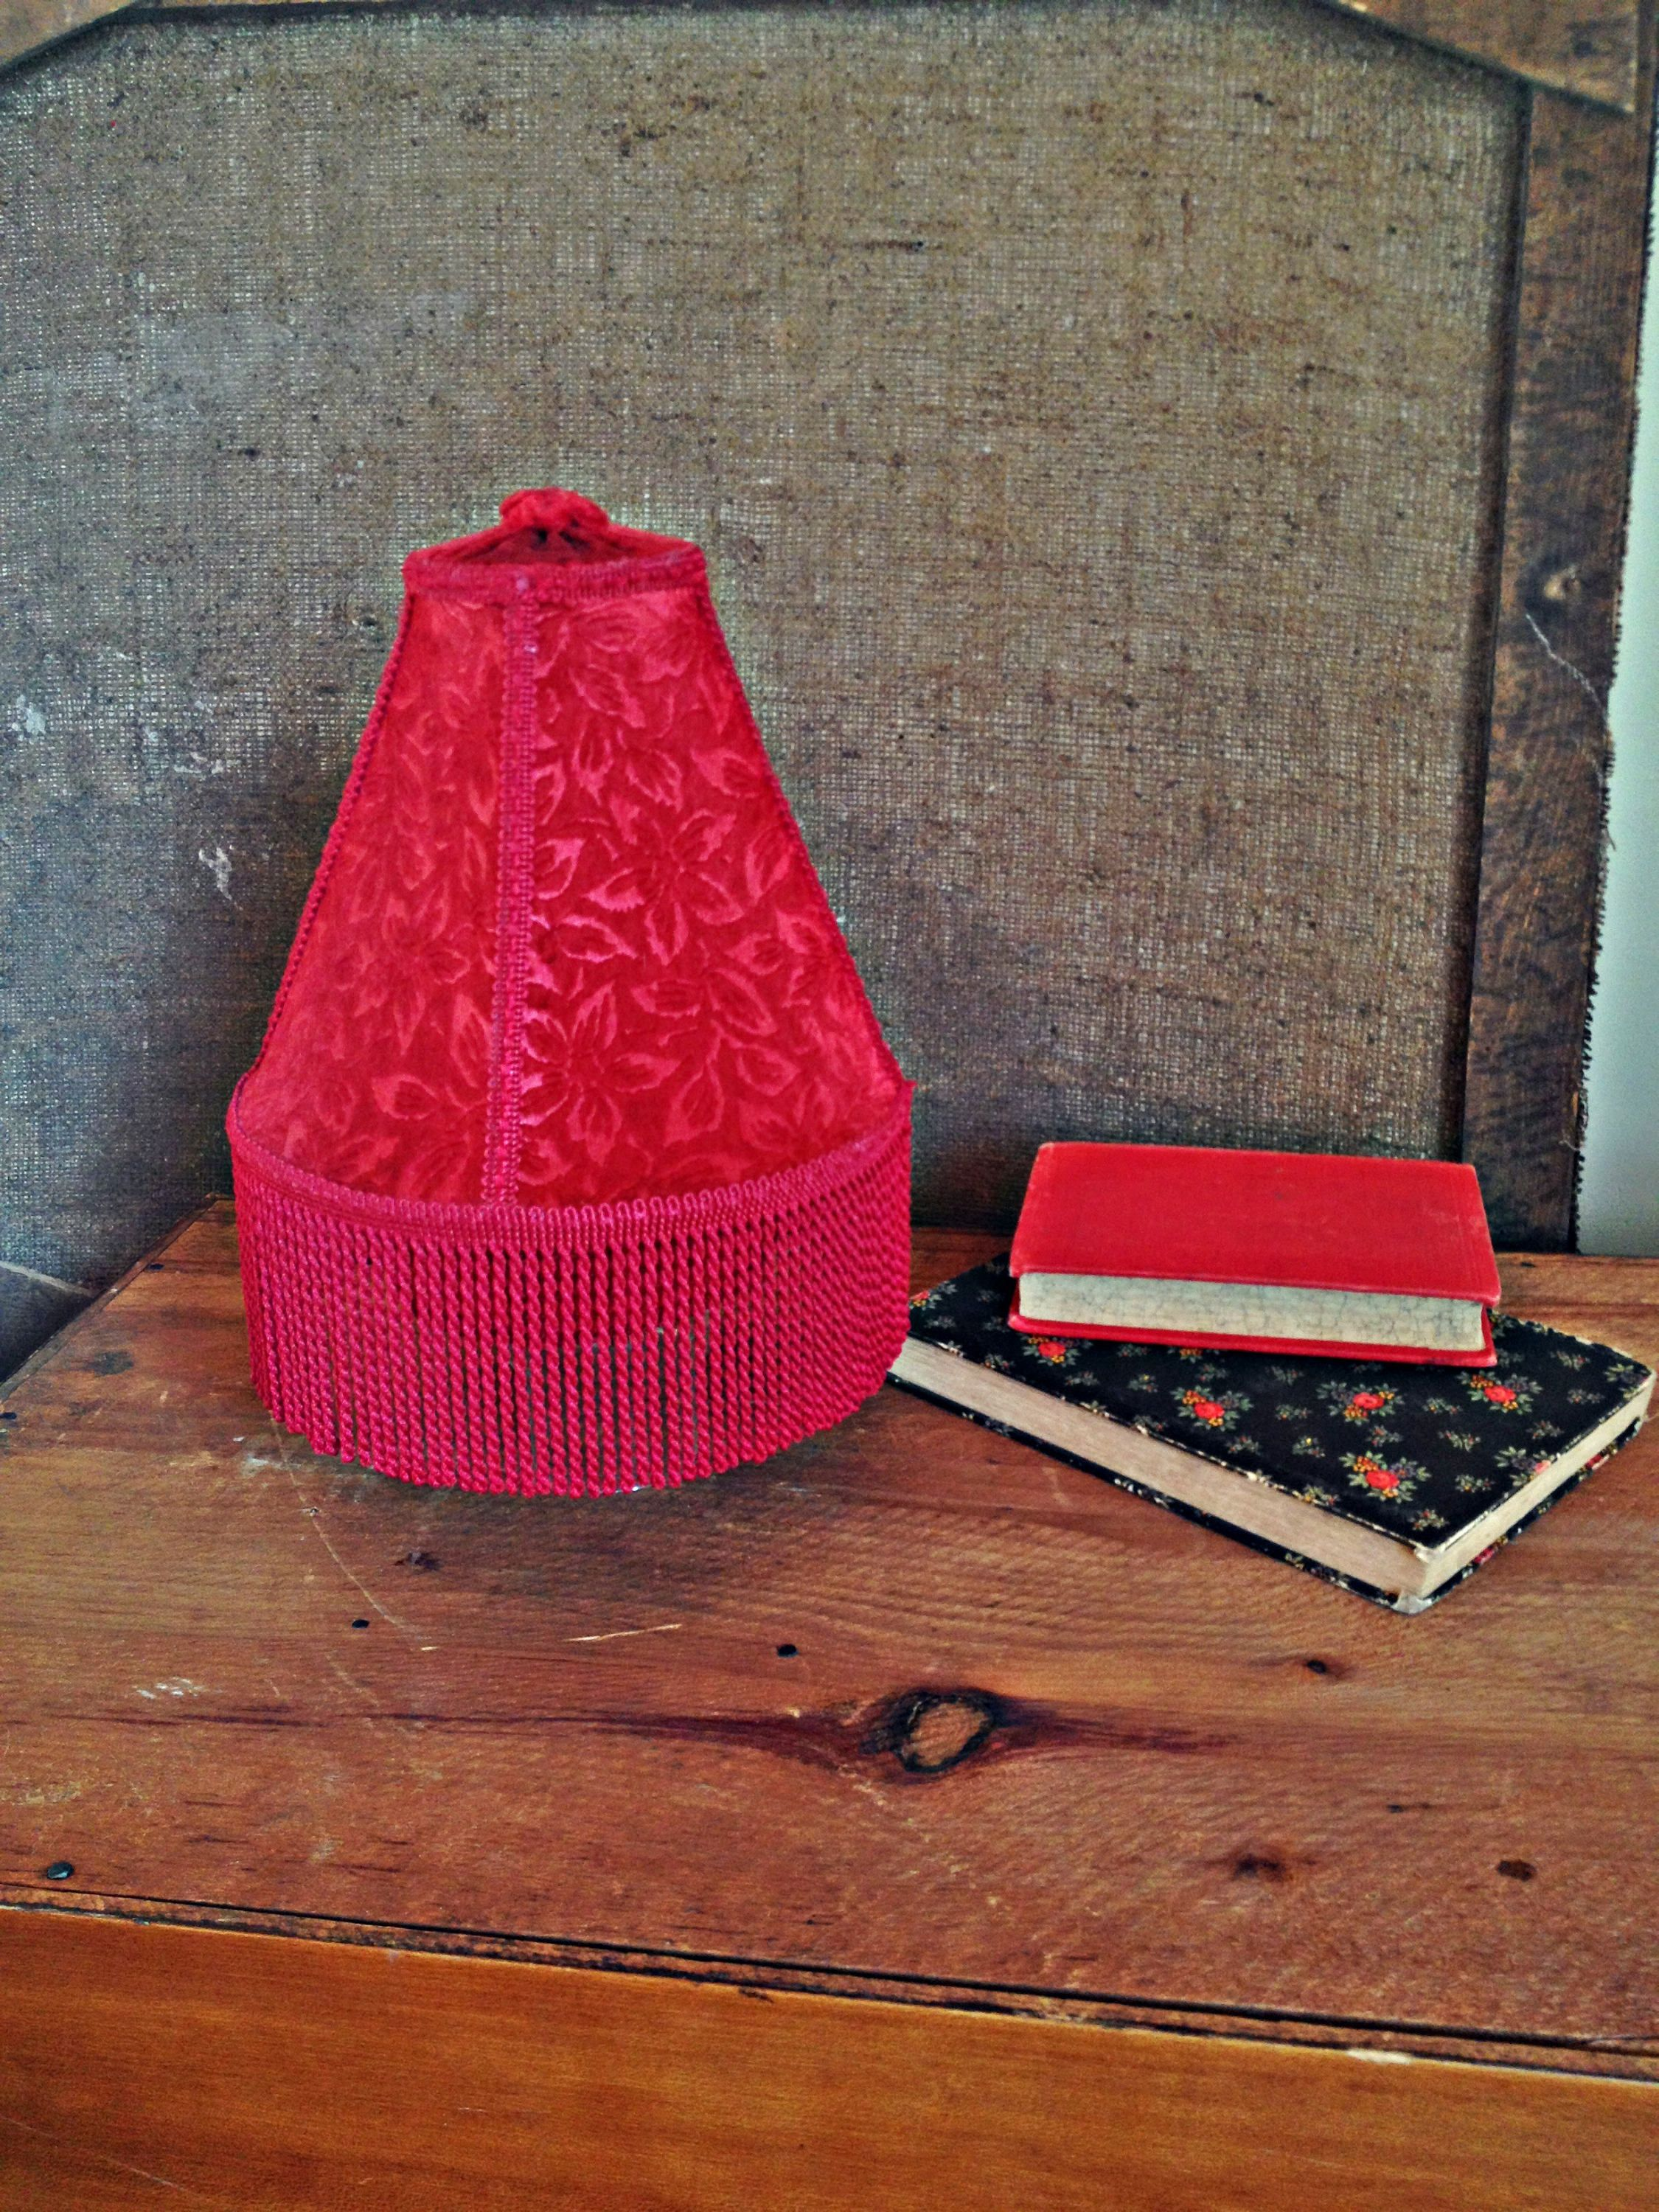 Lamp shade red velvet vintage fringe lamp shade small table lamp lamp shade red velvet vintage fringe lamp shade small table lamp light shade wire frame victorian lamp shade cabaret bedroom style decor by thegara mozeypictures Image collections